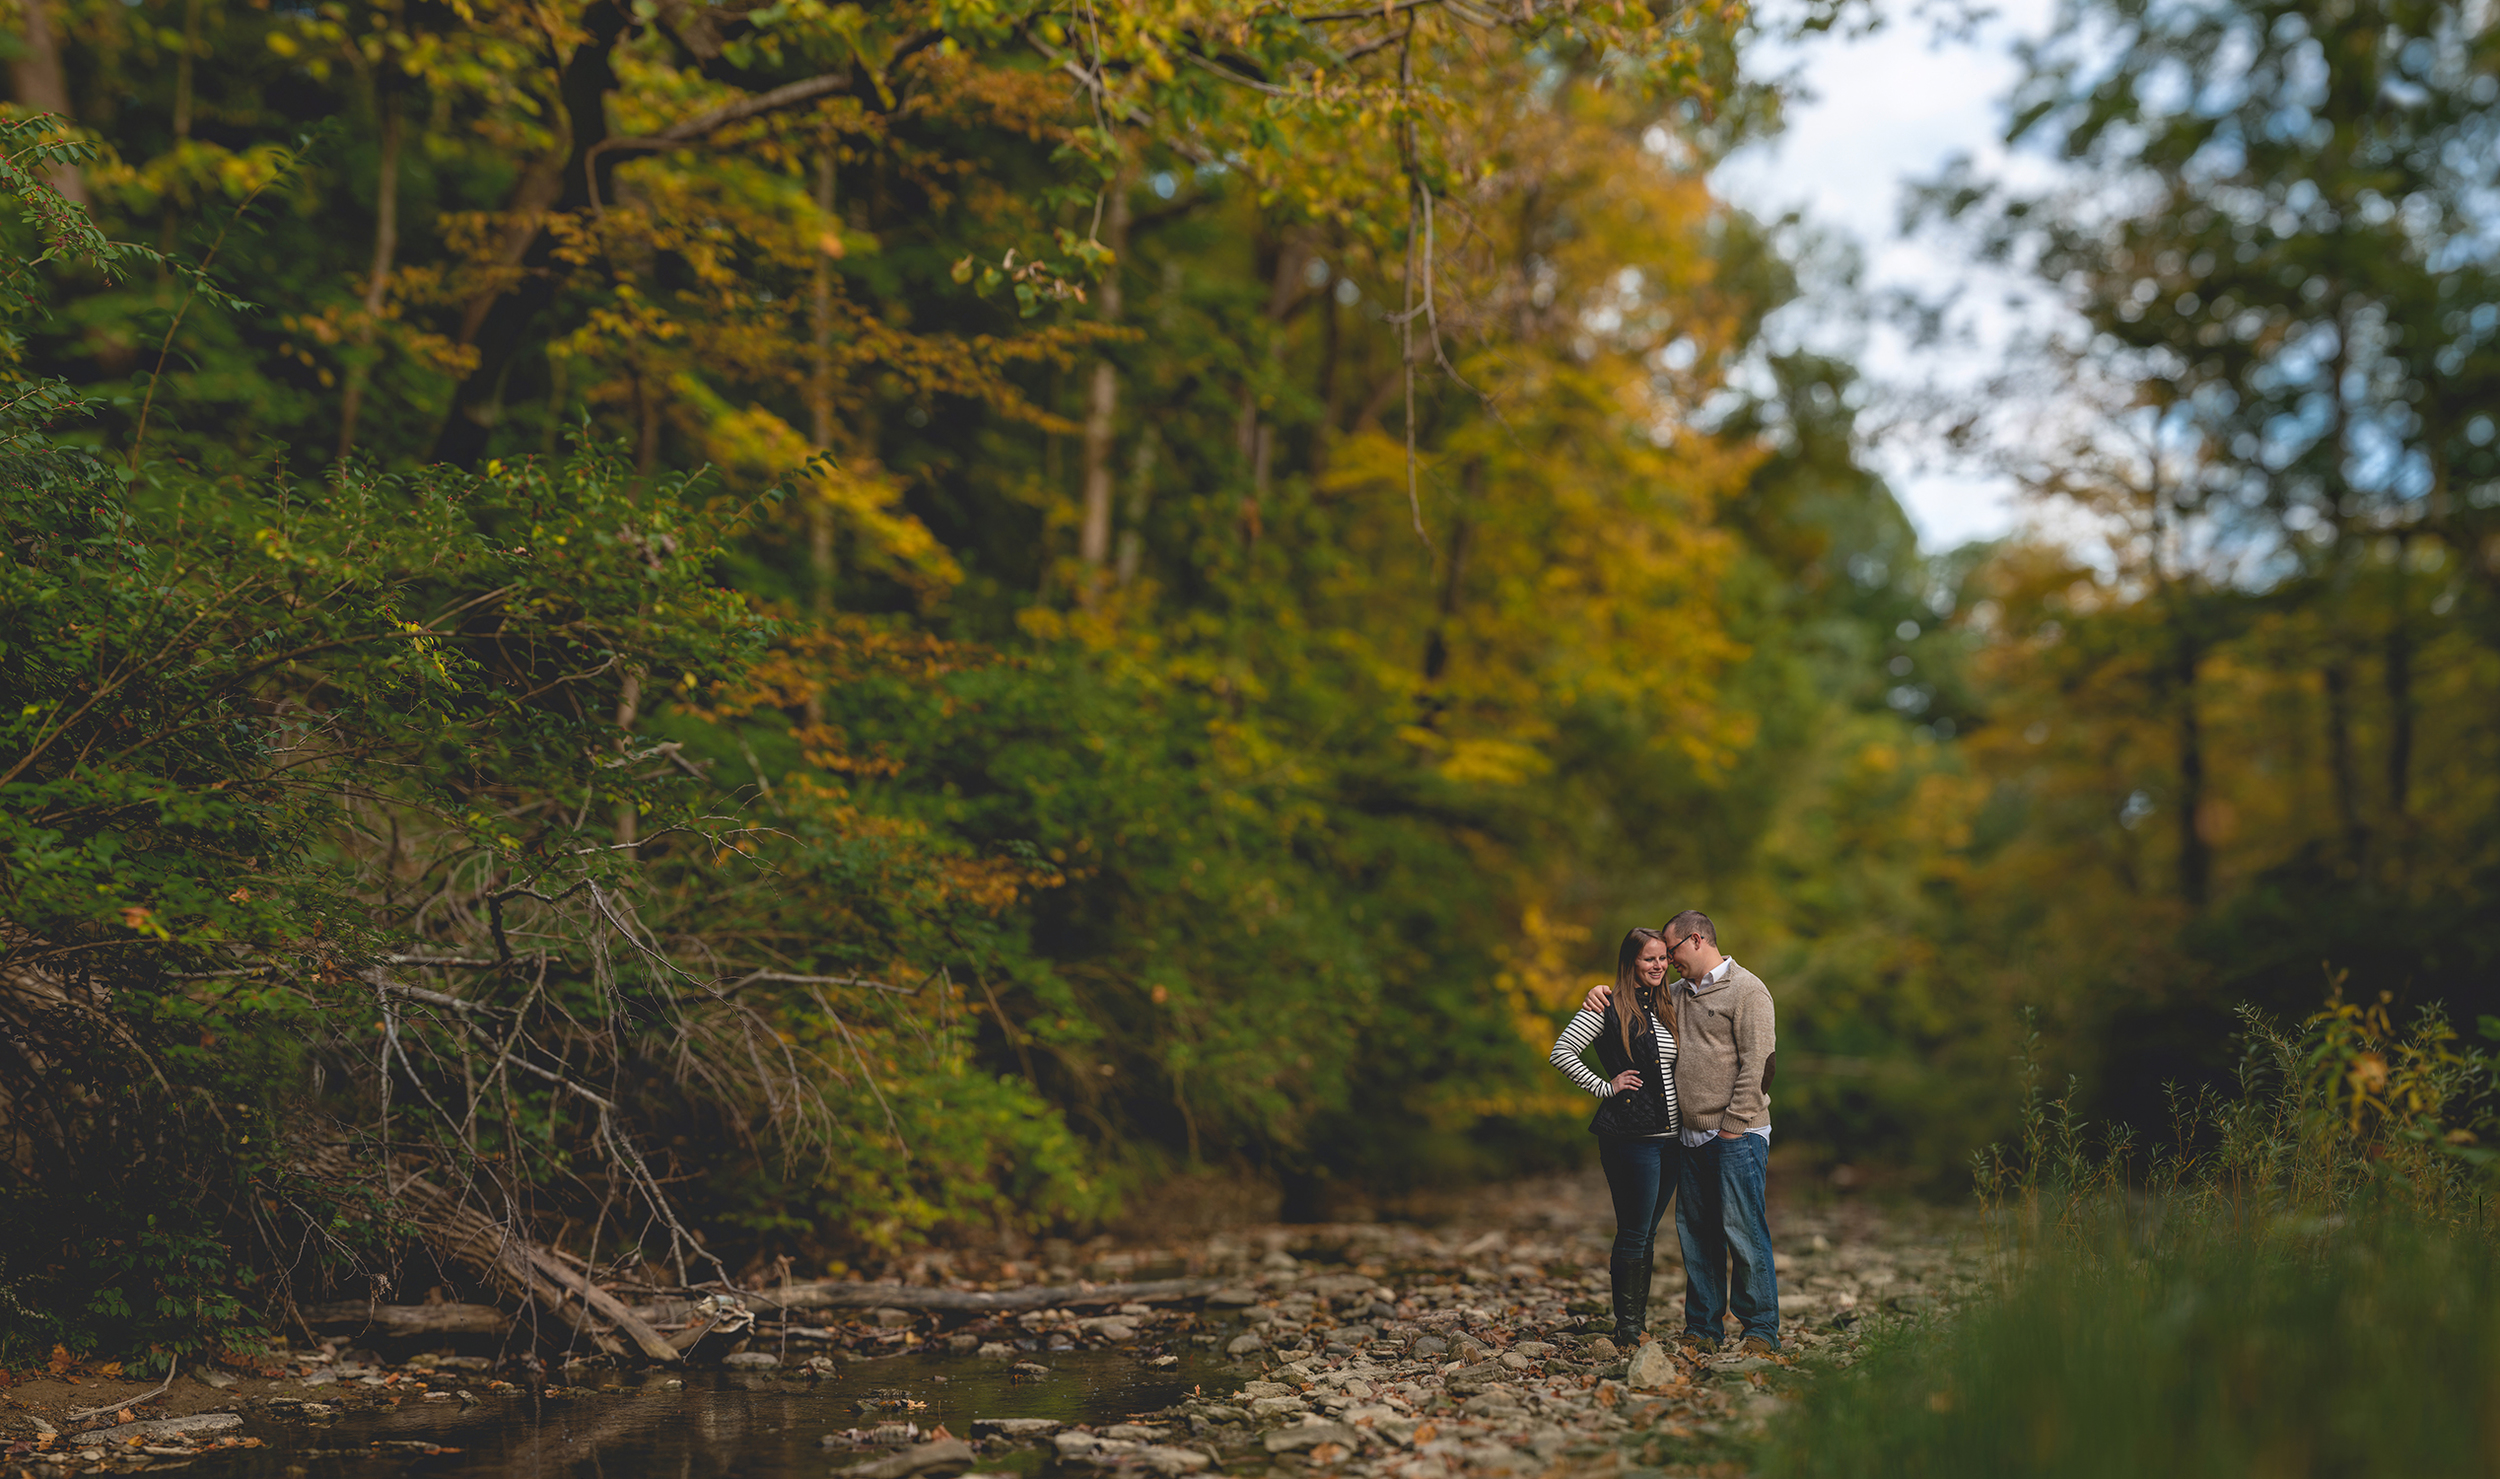 Nature Preserve Engagement Photos - Brenizer Method Photo